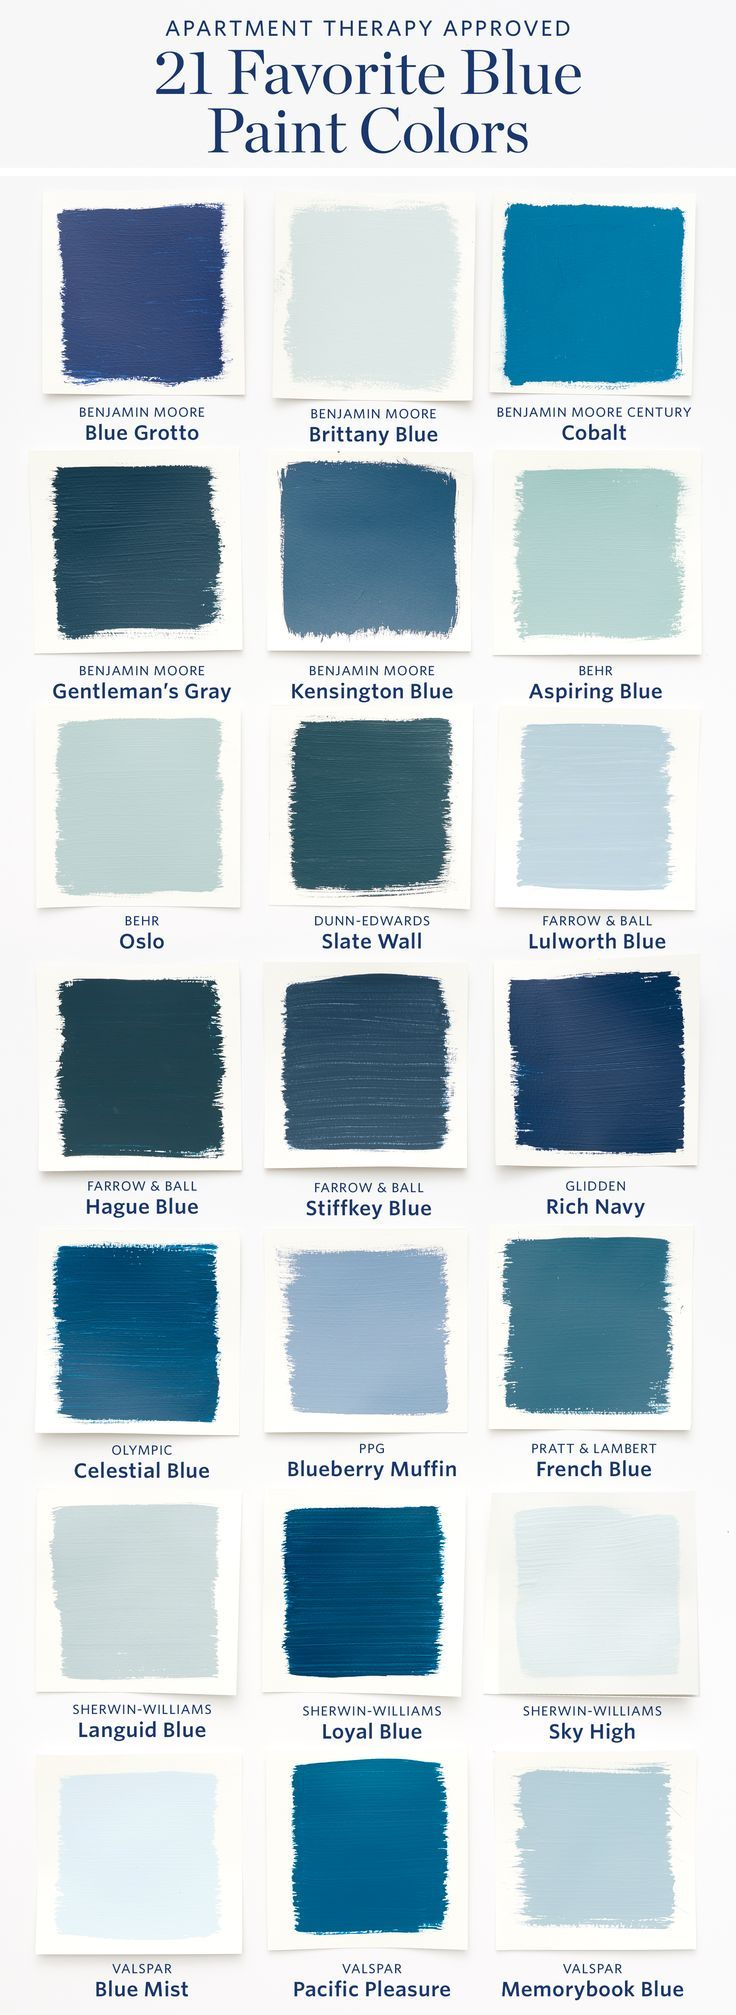 there are so many stunning shades of blue. how will you choose